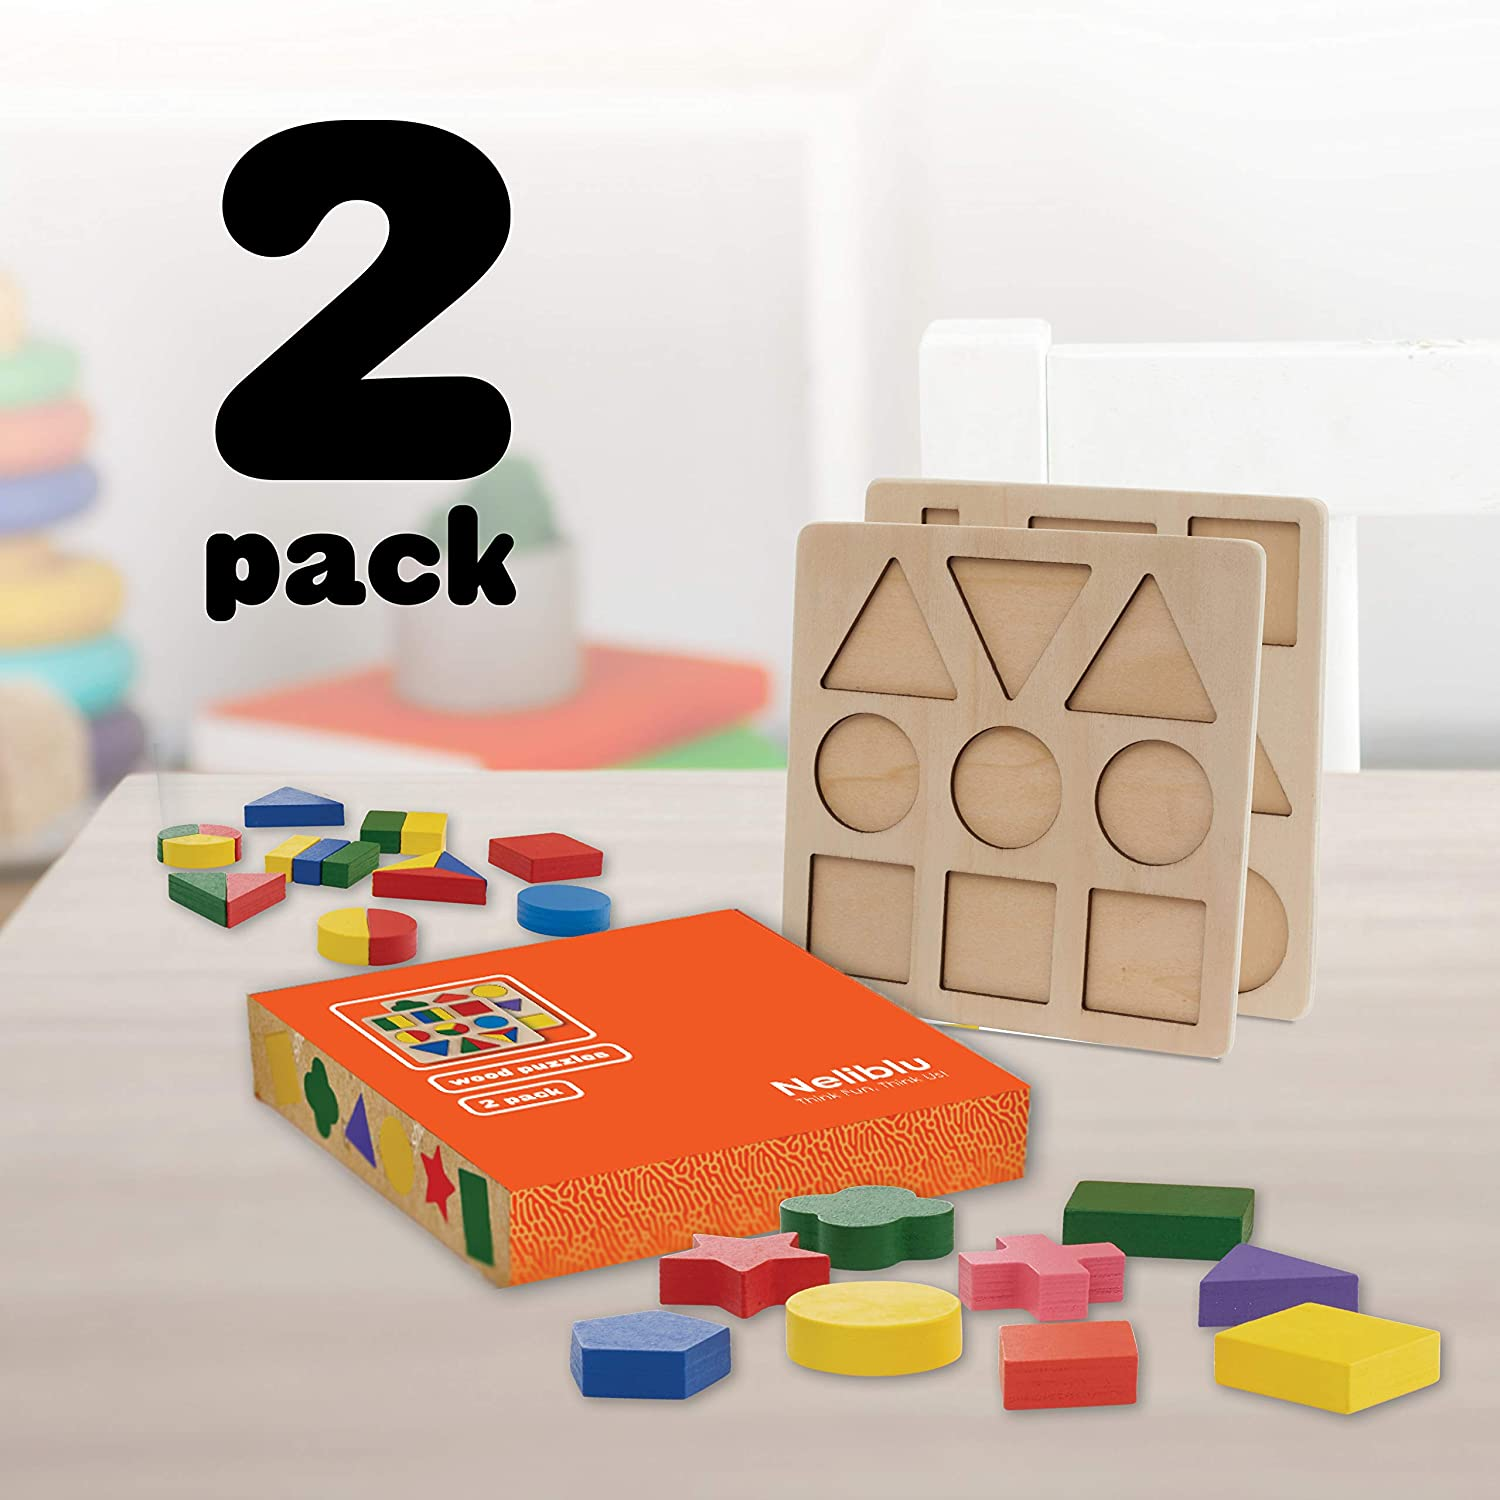 Wood Shape Toddler Puzzles Toys for Kids Set of 2 XL Puzzles with Assorted Shape Blocks Safe Non Toxic and Vibrant Colors Montessori Toy for Little Girls and Boys